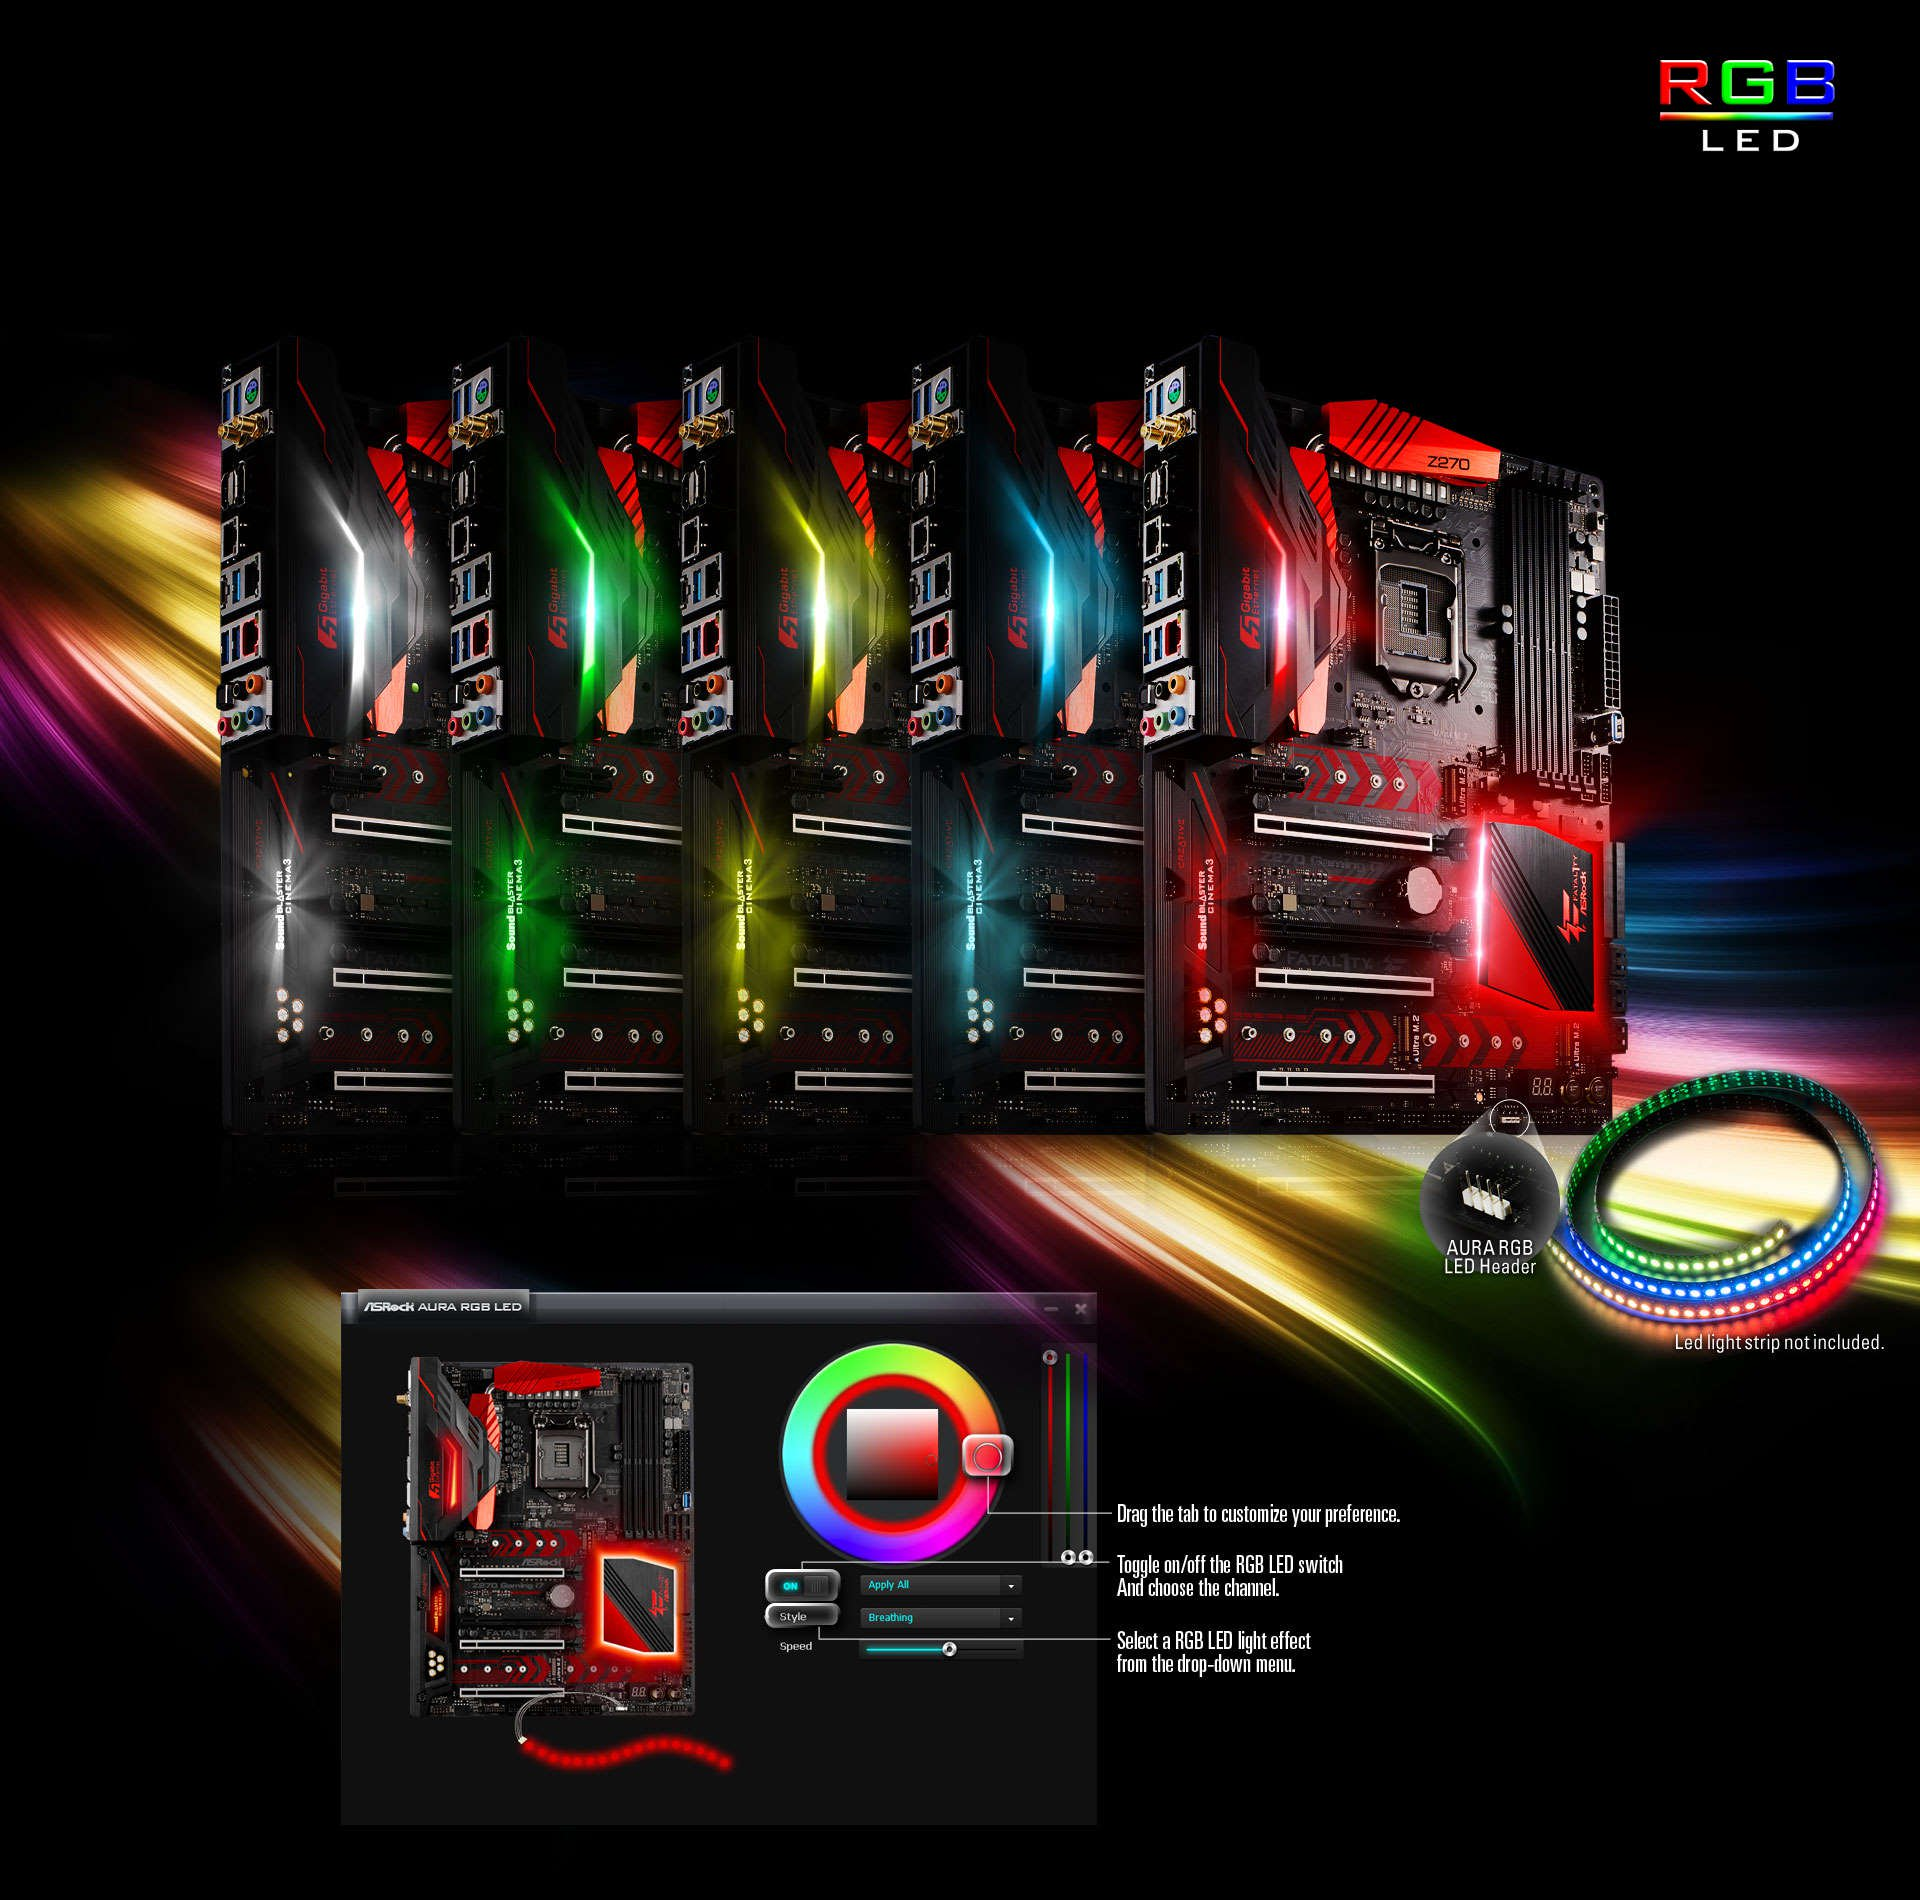 ASROCK FATAL1TY Z270 PROFESSIONAL GAMING I7 WINDOWS 7 64BIT DRIVER DOWNLOAD